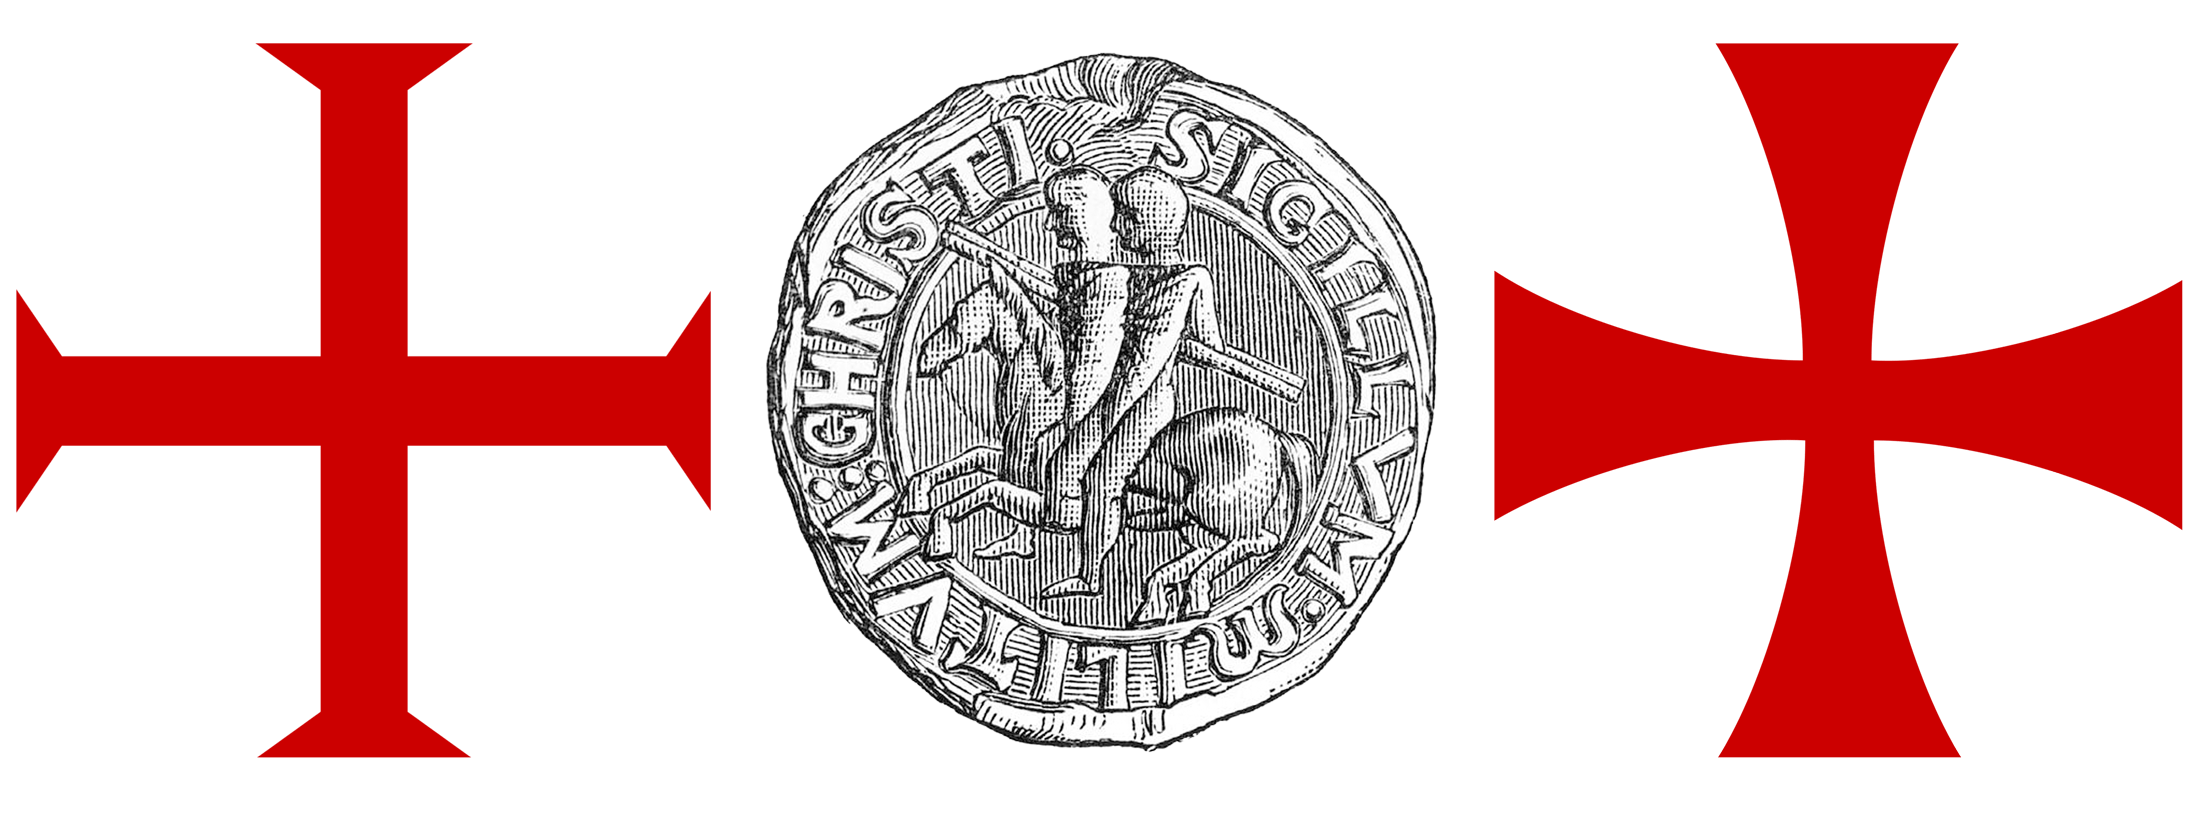 Seal and Cross of the Knights Templar